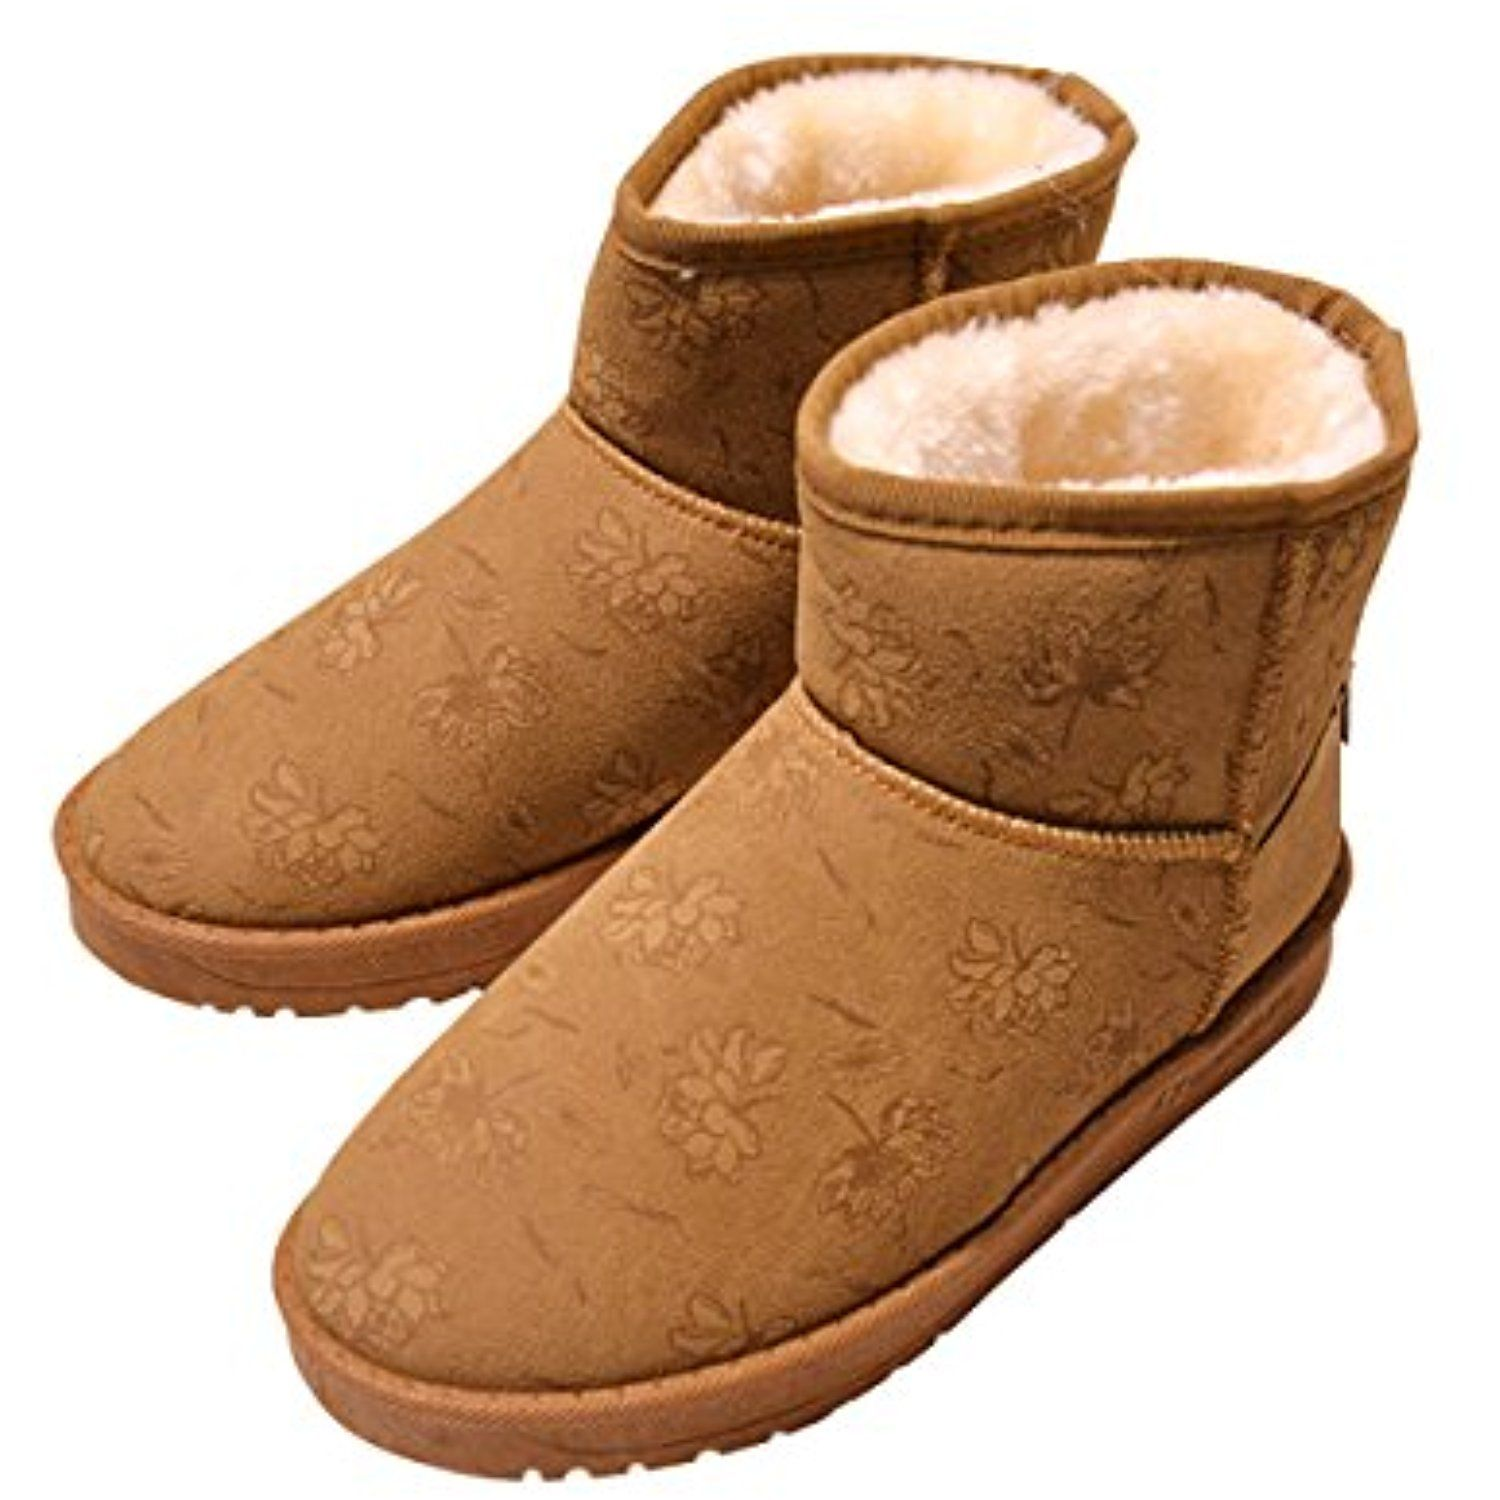 Faux Fur Lining Snow Boots Women's Fashion Ankle High Flat Heel Warm Shoes By VFDB